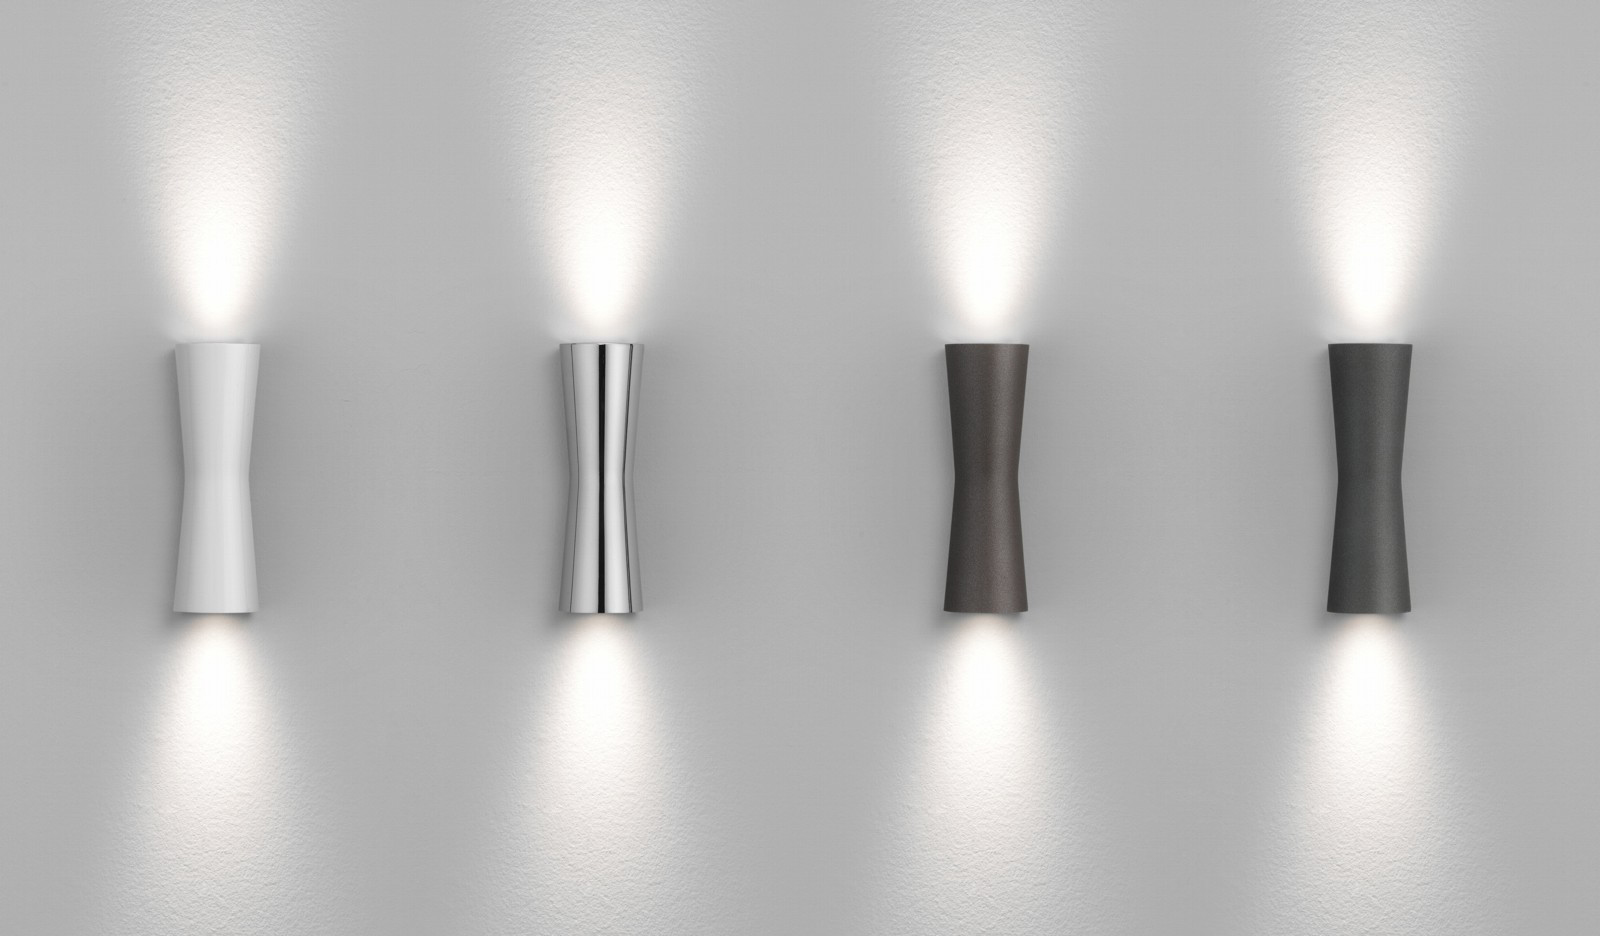 Clessidra modern up down contemporary wall spot light for for Contemporary wall light fixtures